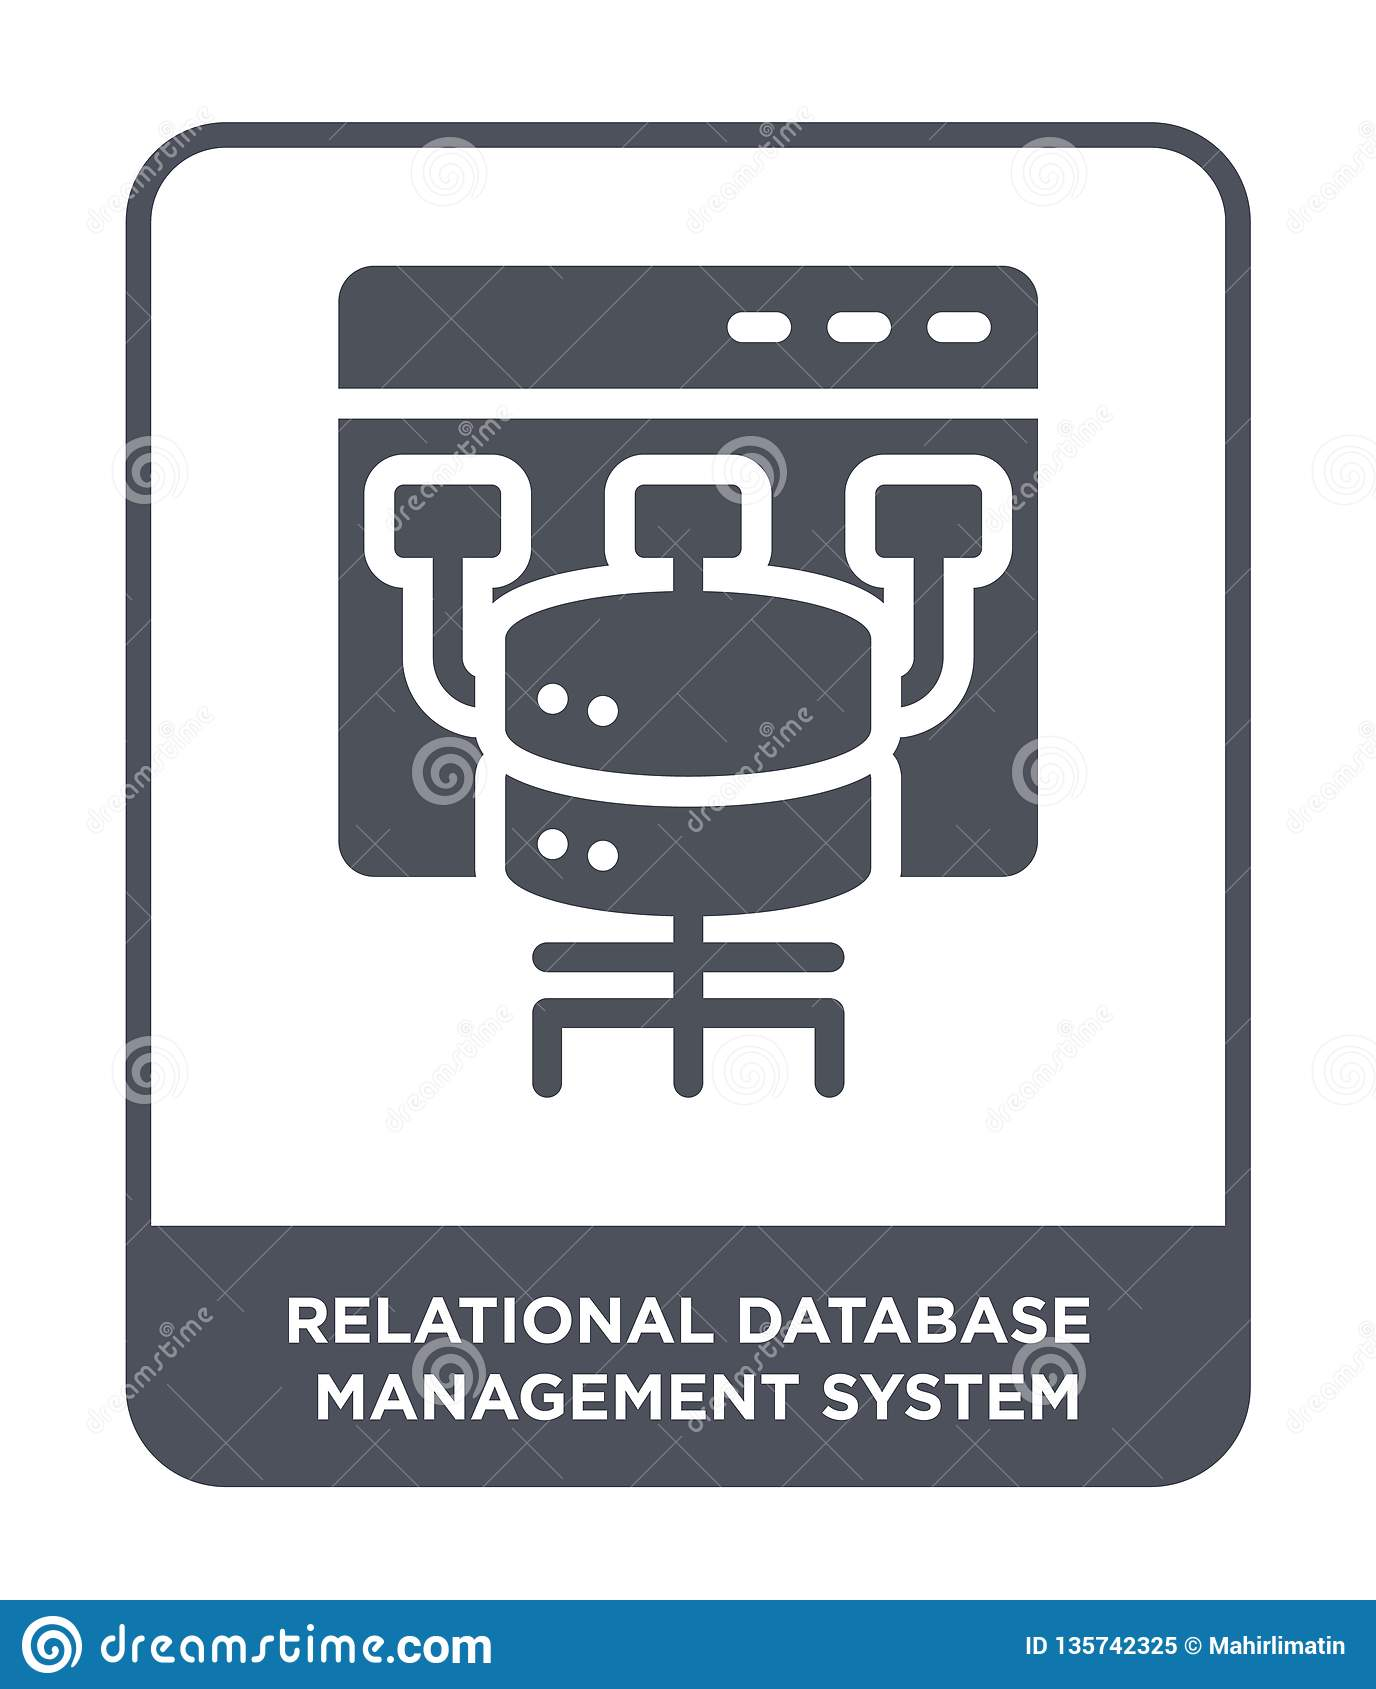 relational database management system icon in trendy design style. relational database management system icon isolated on white